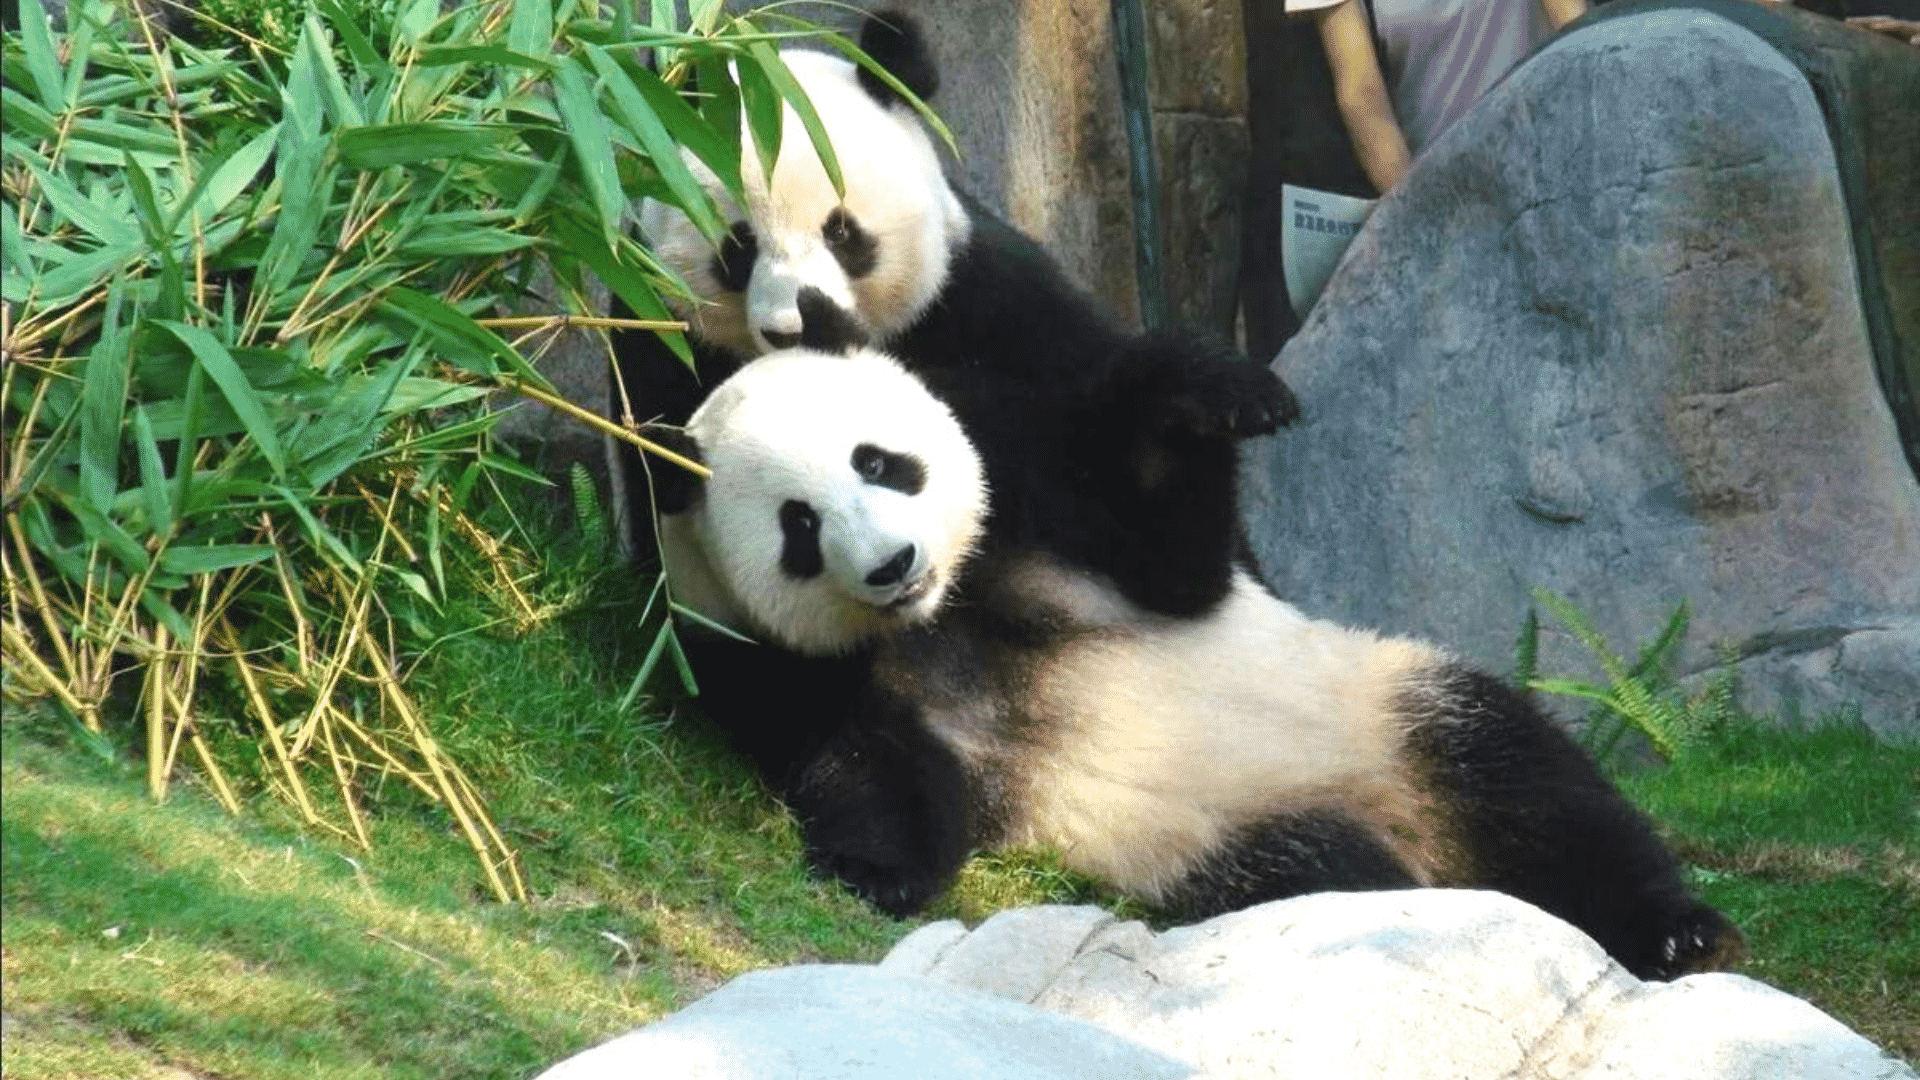 2 Pandas Make Love for the 1st Time in a Decade Thanks to COVID-19!